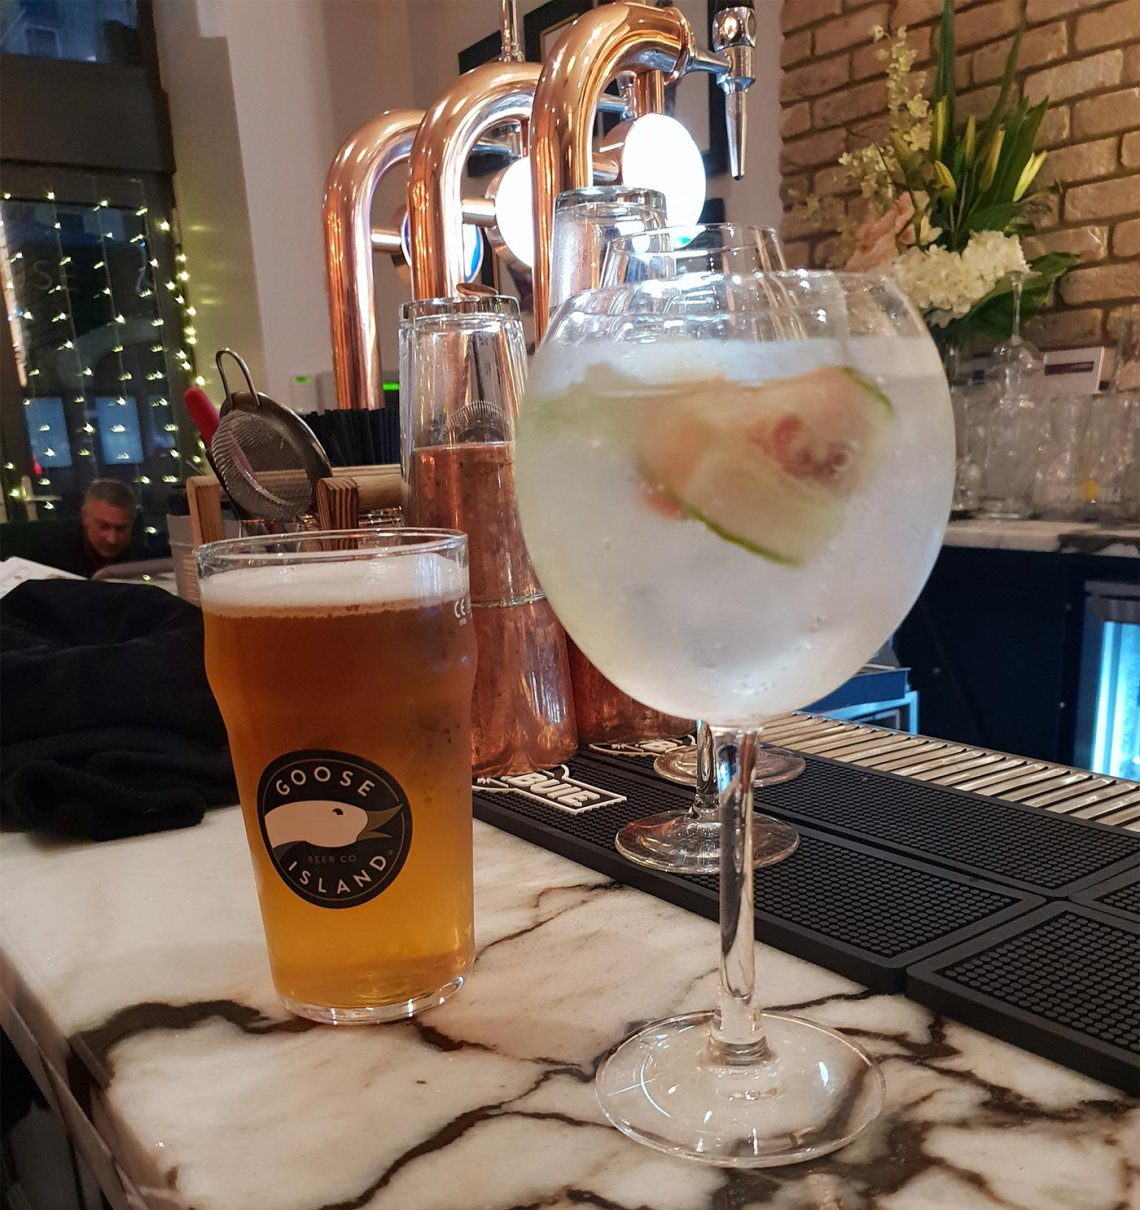 A balloon glass of Hendricks Gin and Fever Tree tonic and a pint glass of Goose Island IPA sitting on a marble bar. Castle Street Townhouse, Liverpool - Female Original